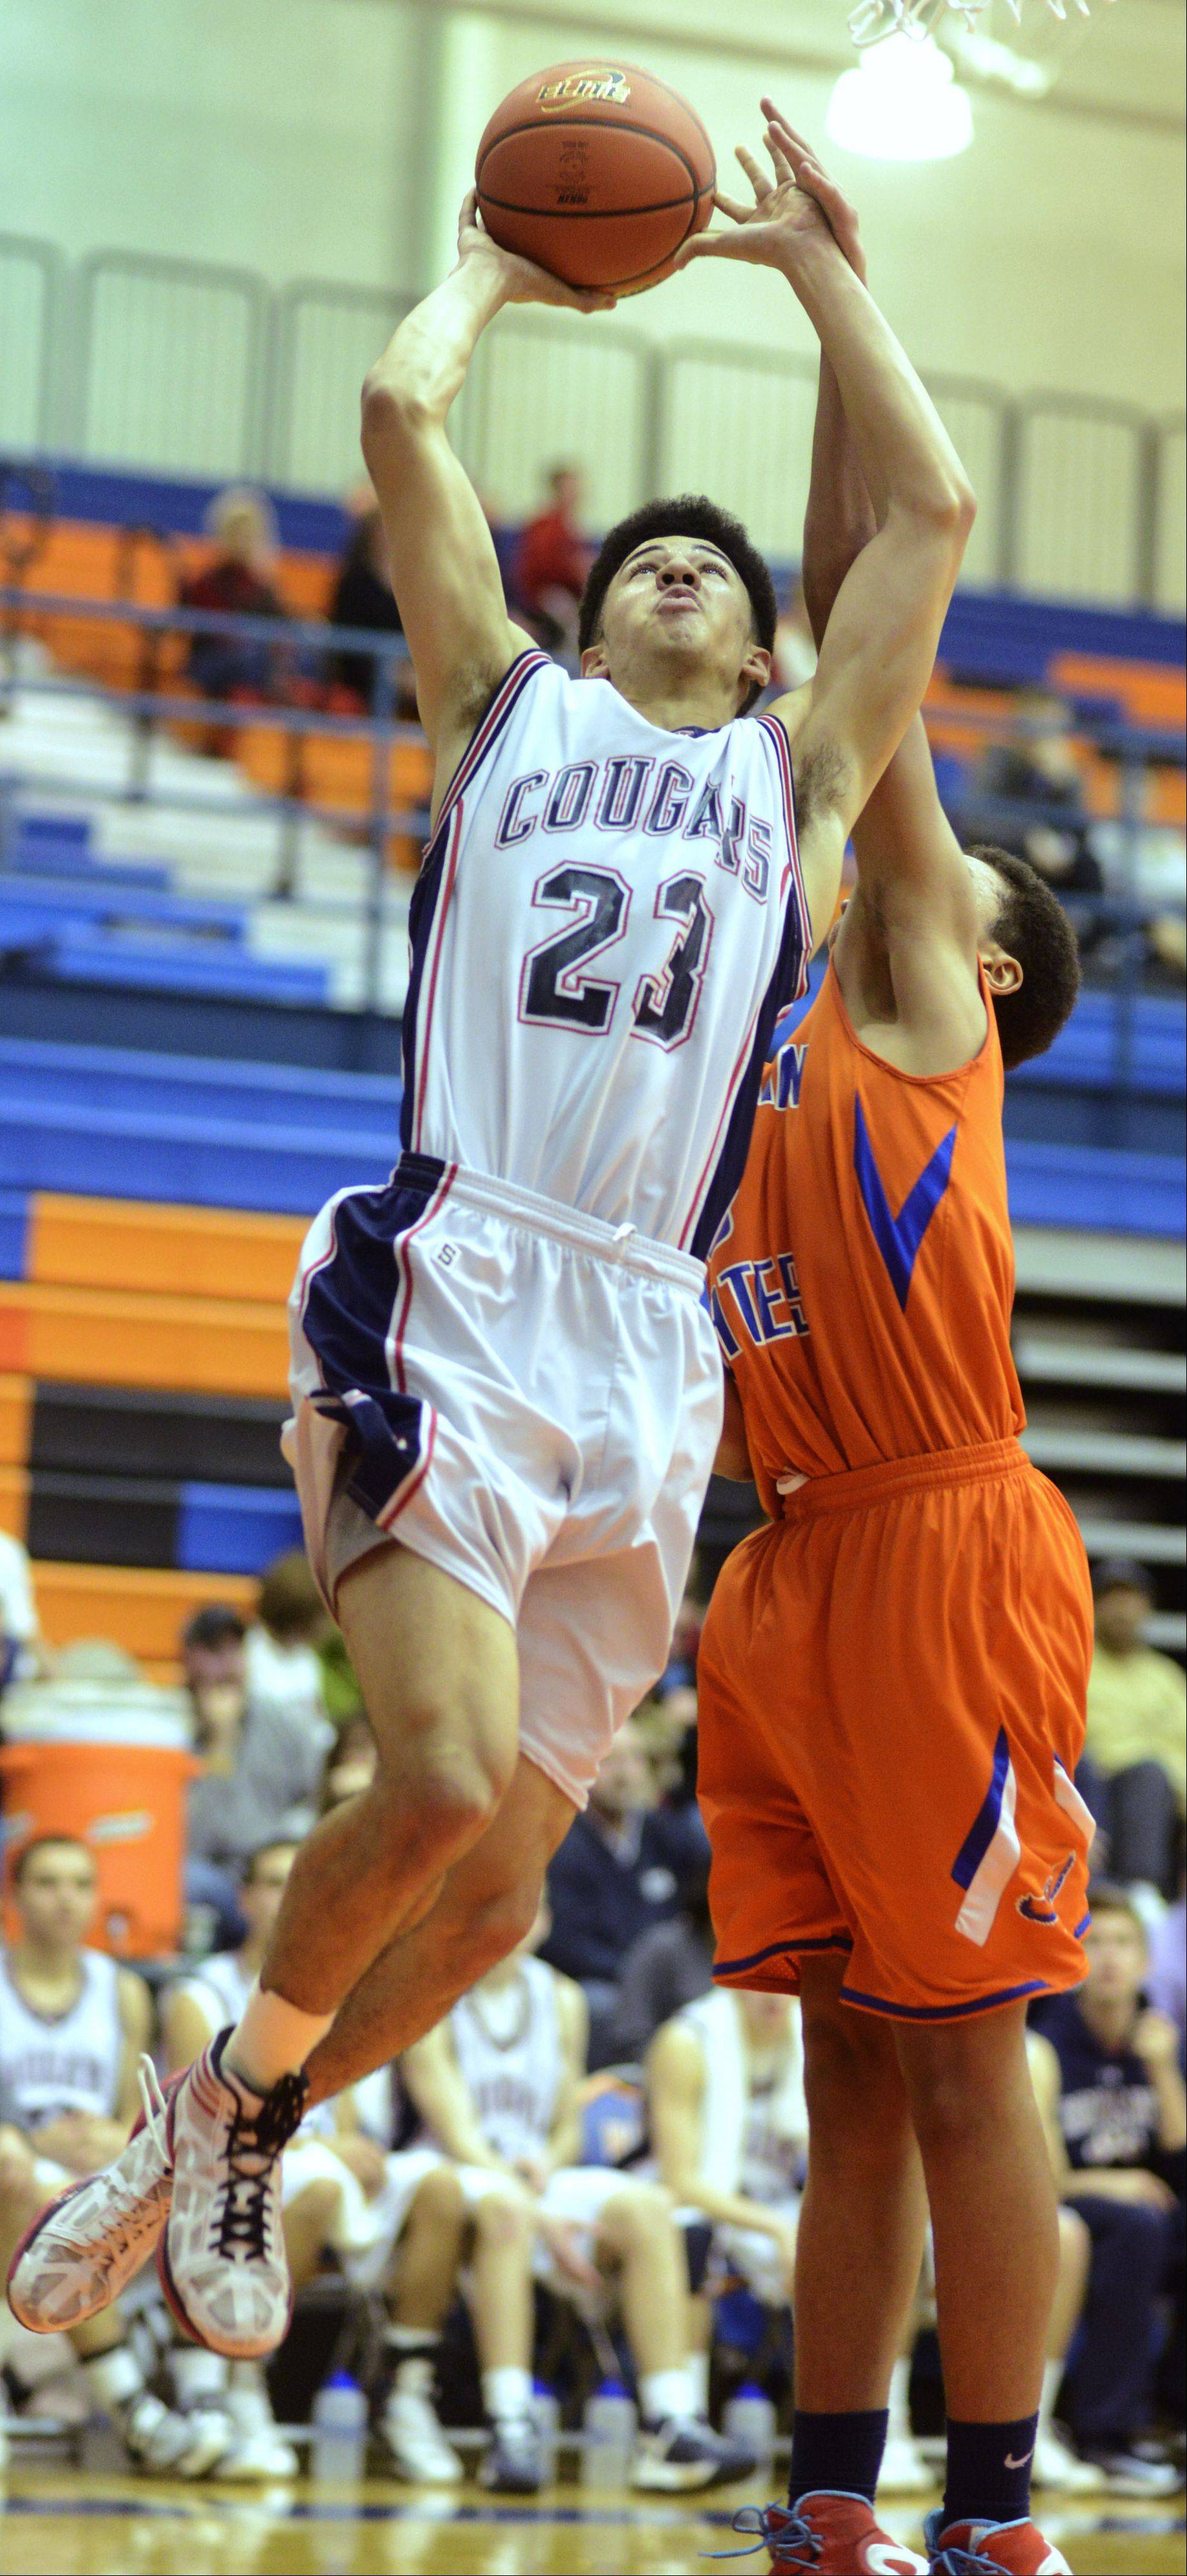 Hard work and perseverance served Conant's Robert Hudson well in his drive to play basketball collegiately.